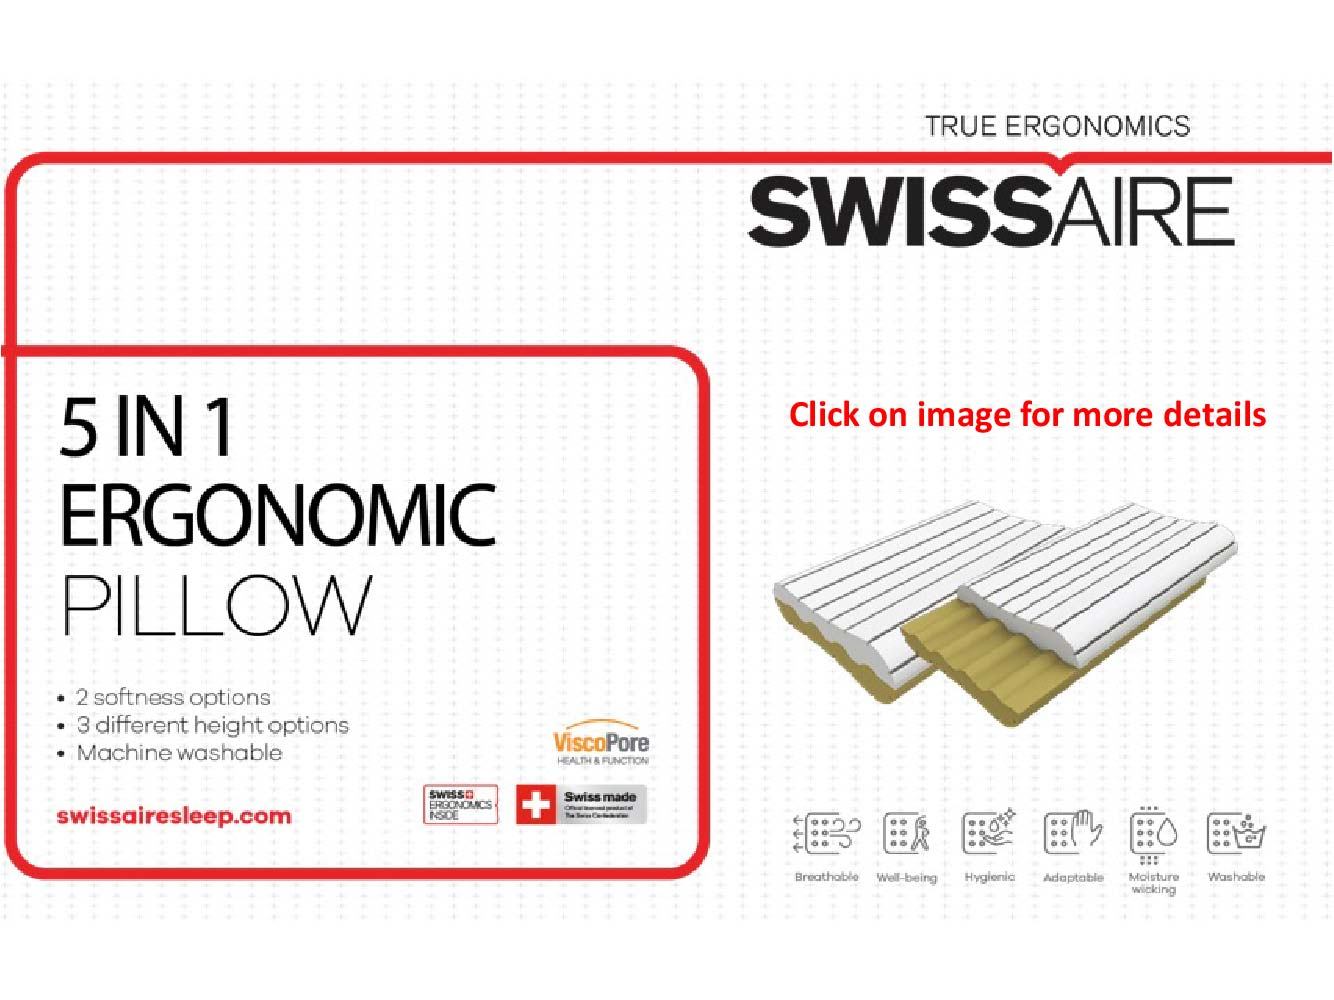 Swissaire True Ergonomics - 5 in 1 ergonomic pillow